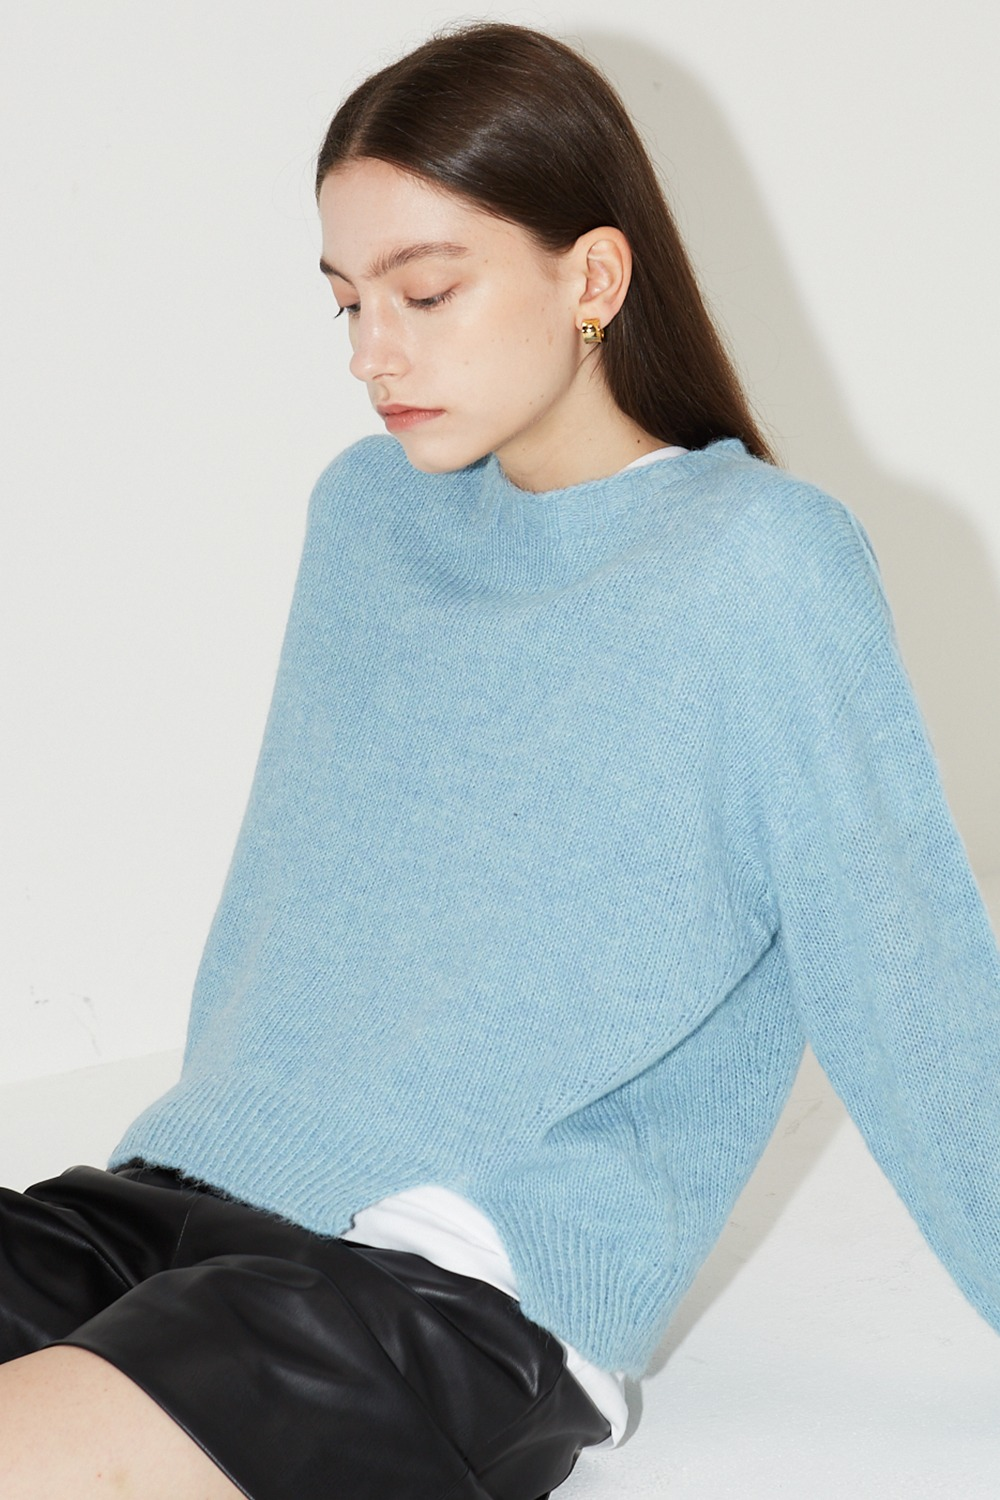 Wholegarment Basic Knit Melange Blue